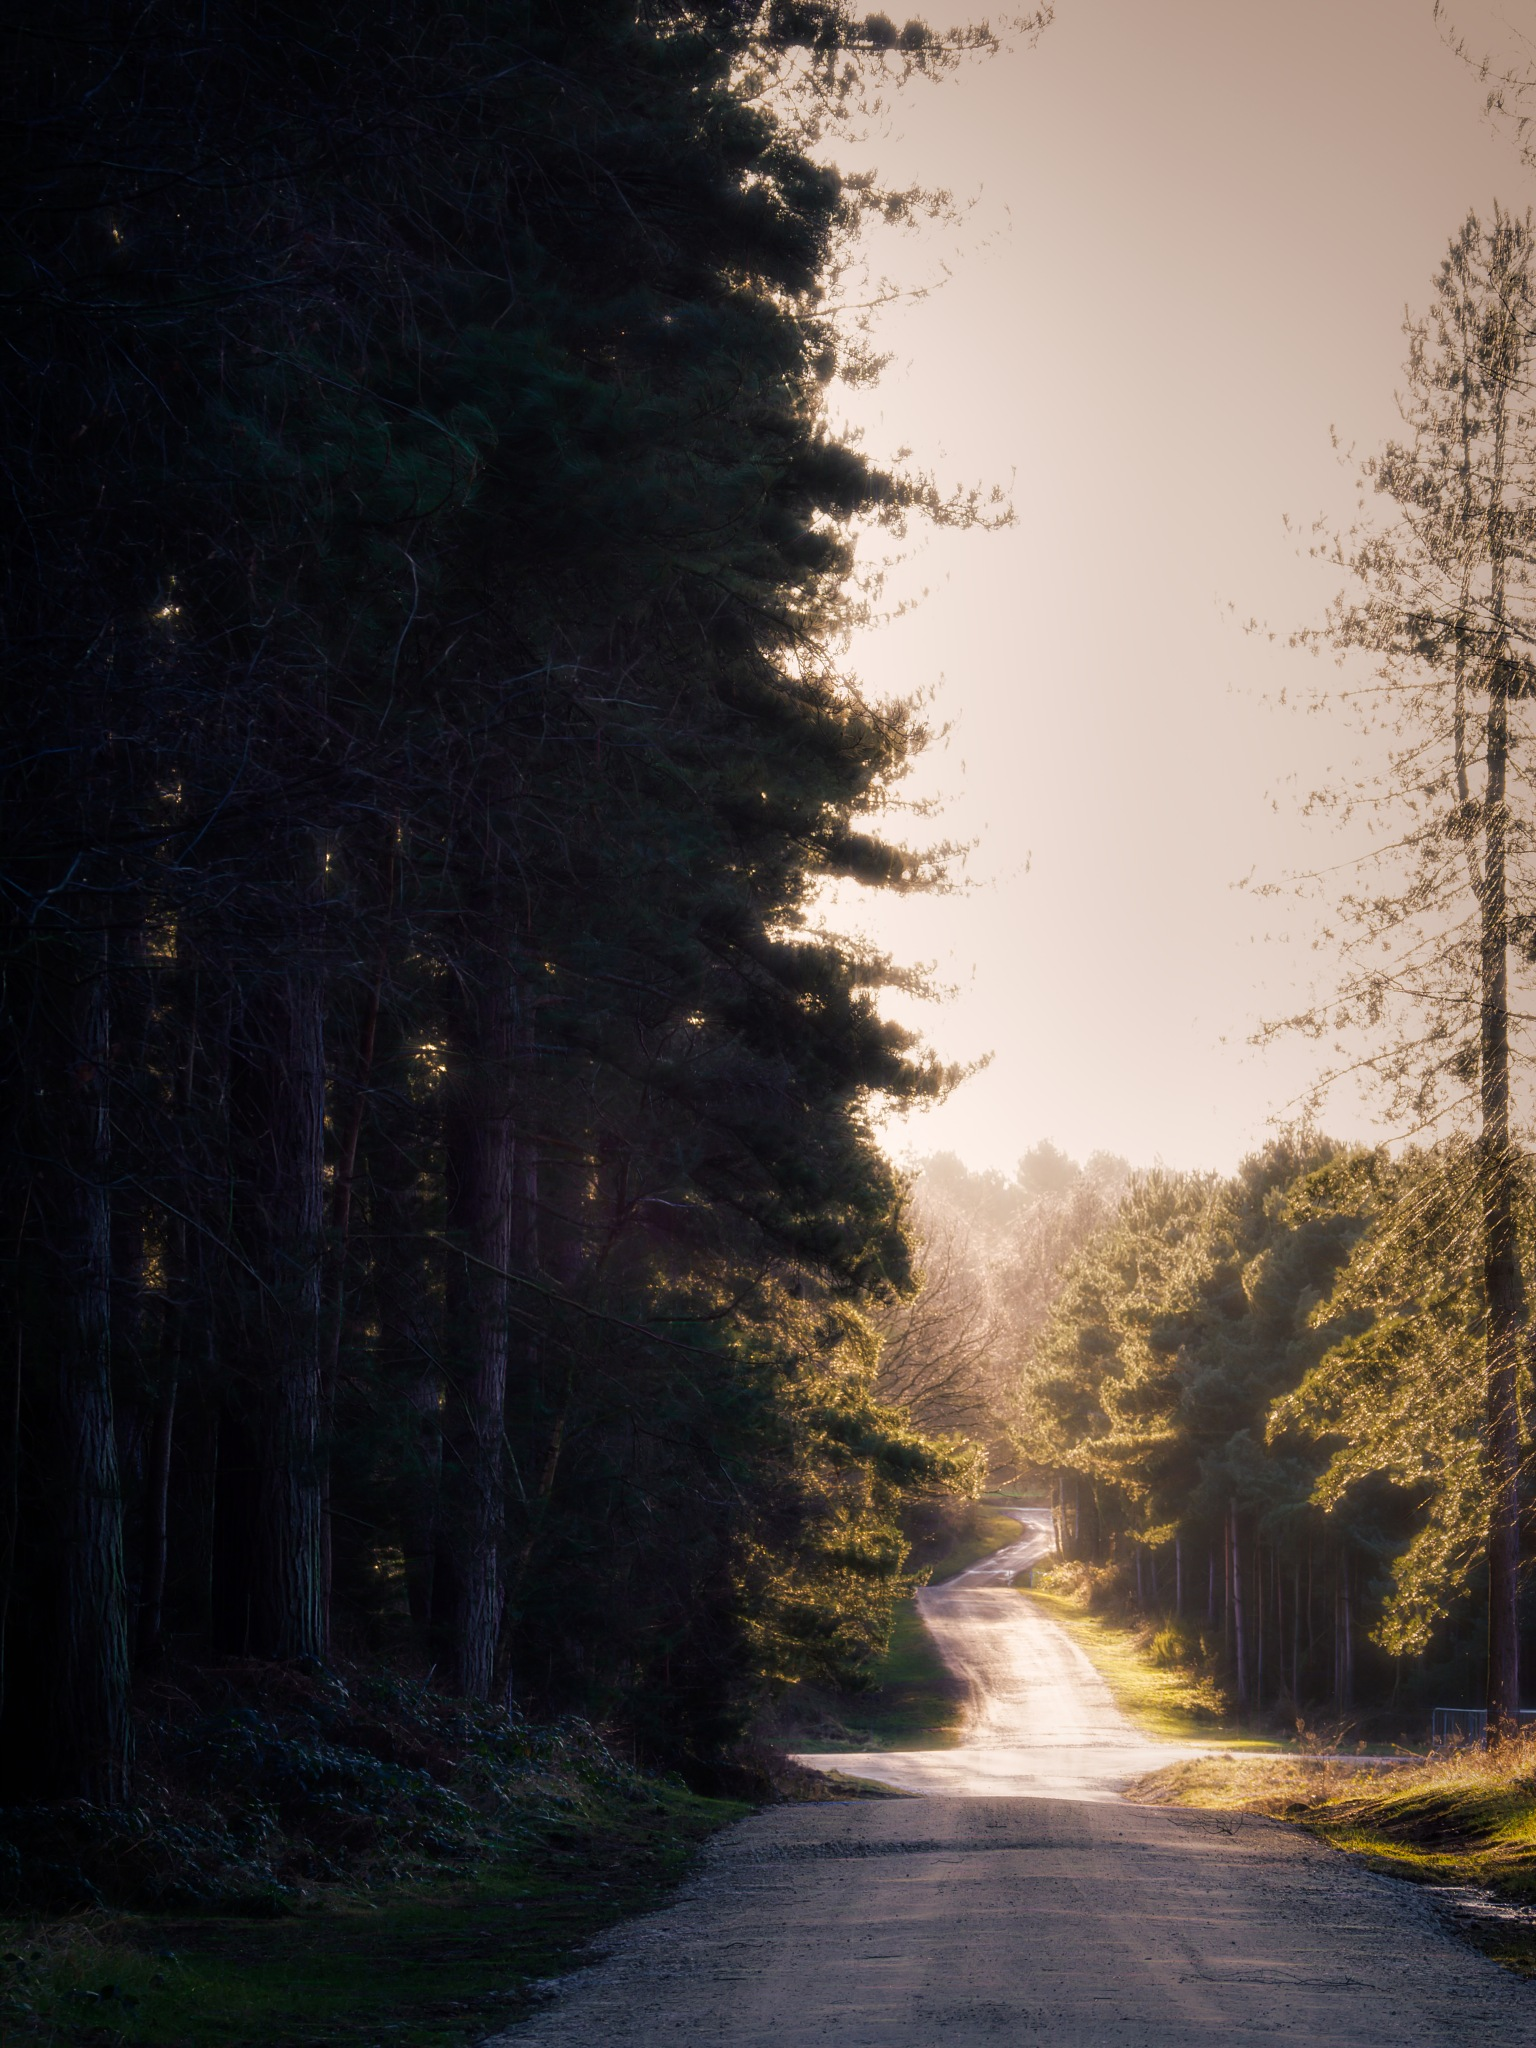 Evening Road 2 by Sarah Walters